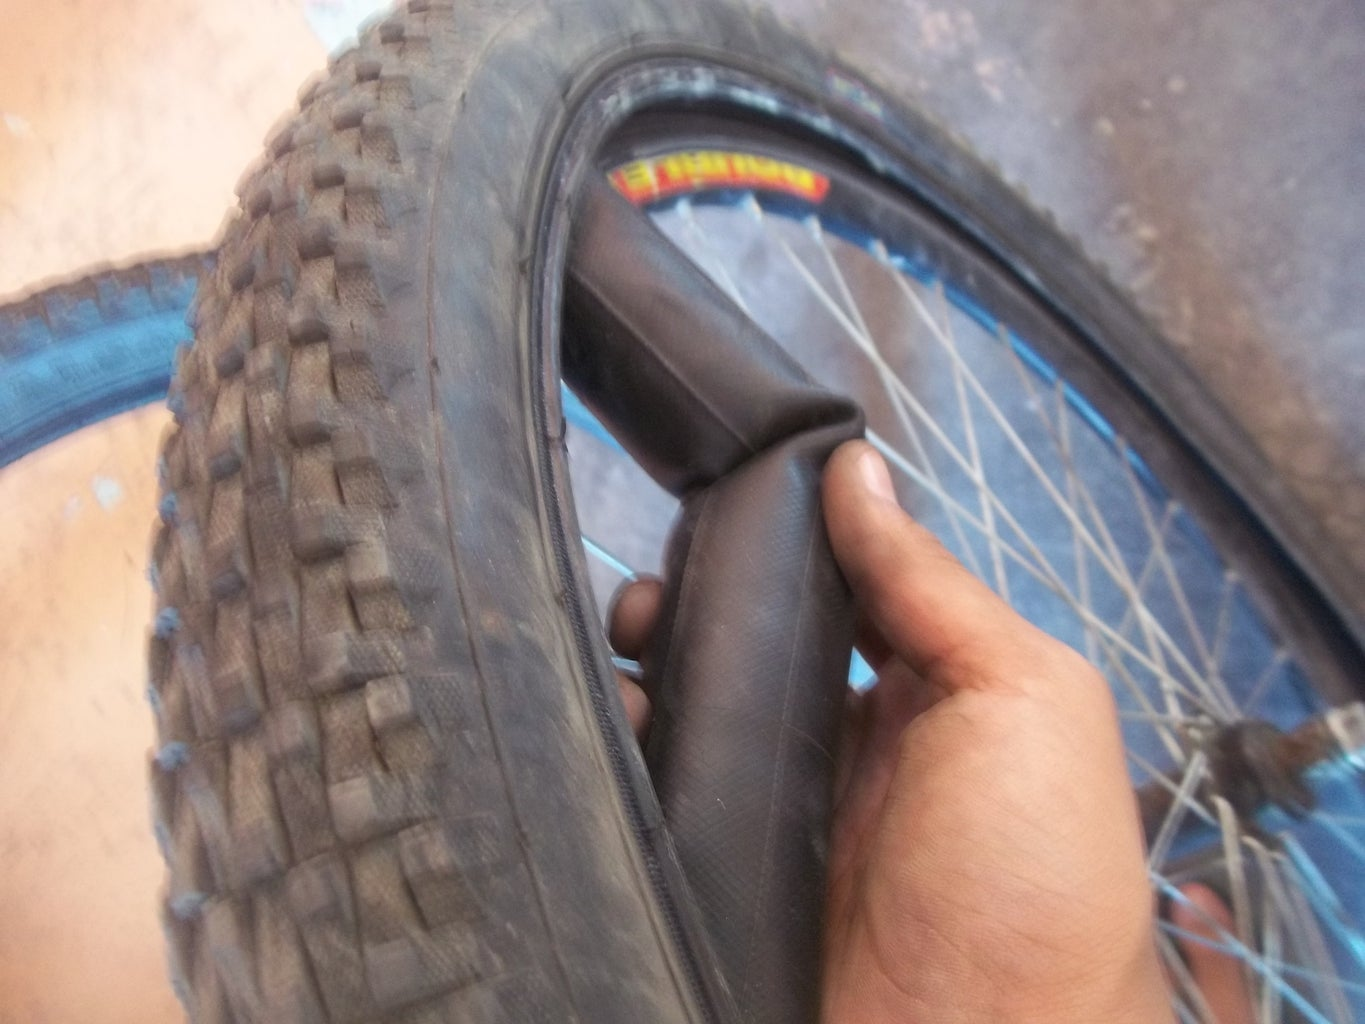 Removing the Tire From the Rim.